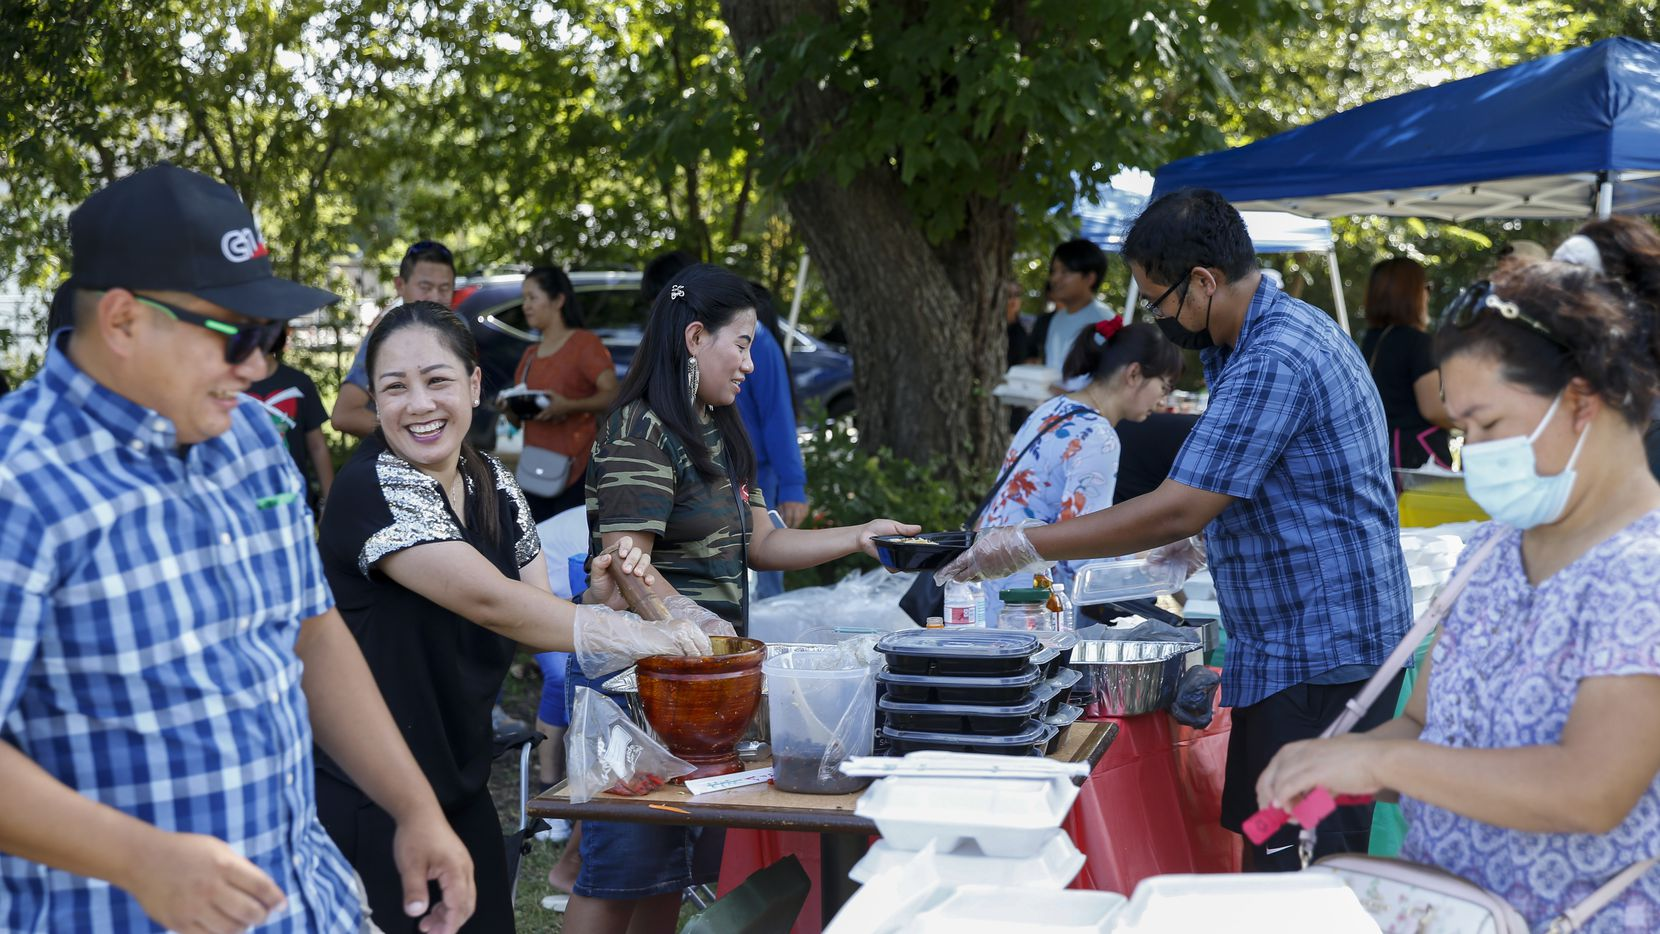 Residents prepare food for sale during a community fair and fundraiser for the Kachin state at DFW Kachin Baptist Church on Sunday, July 25, 2021, in Grand Prairie, Texas.